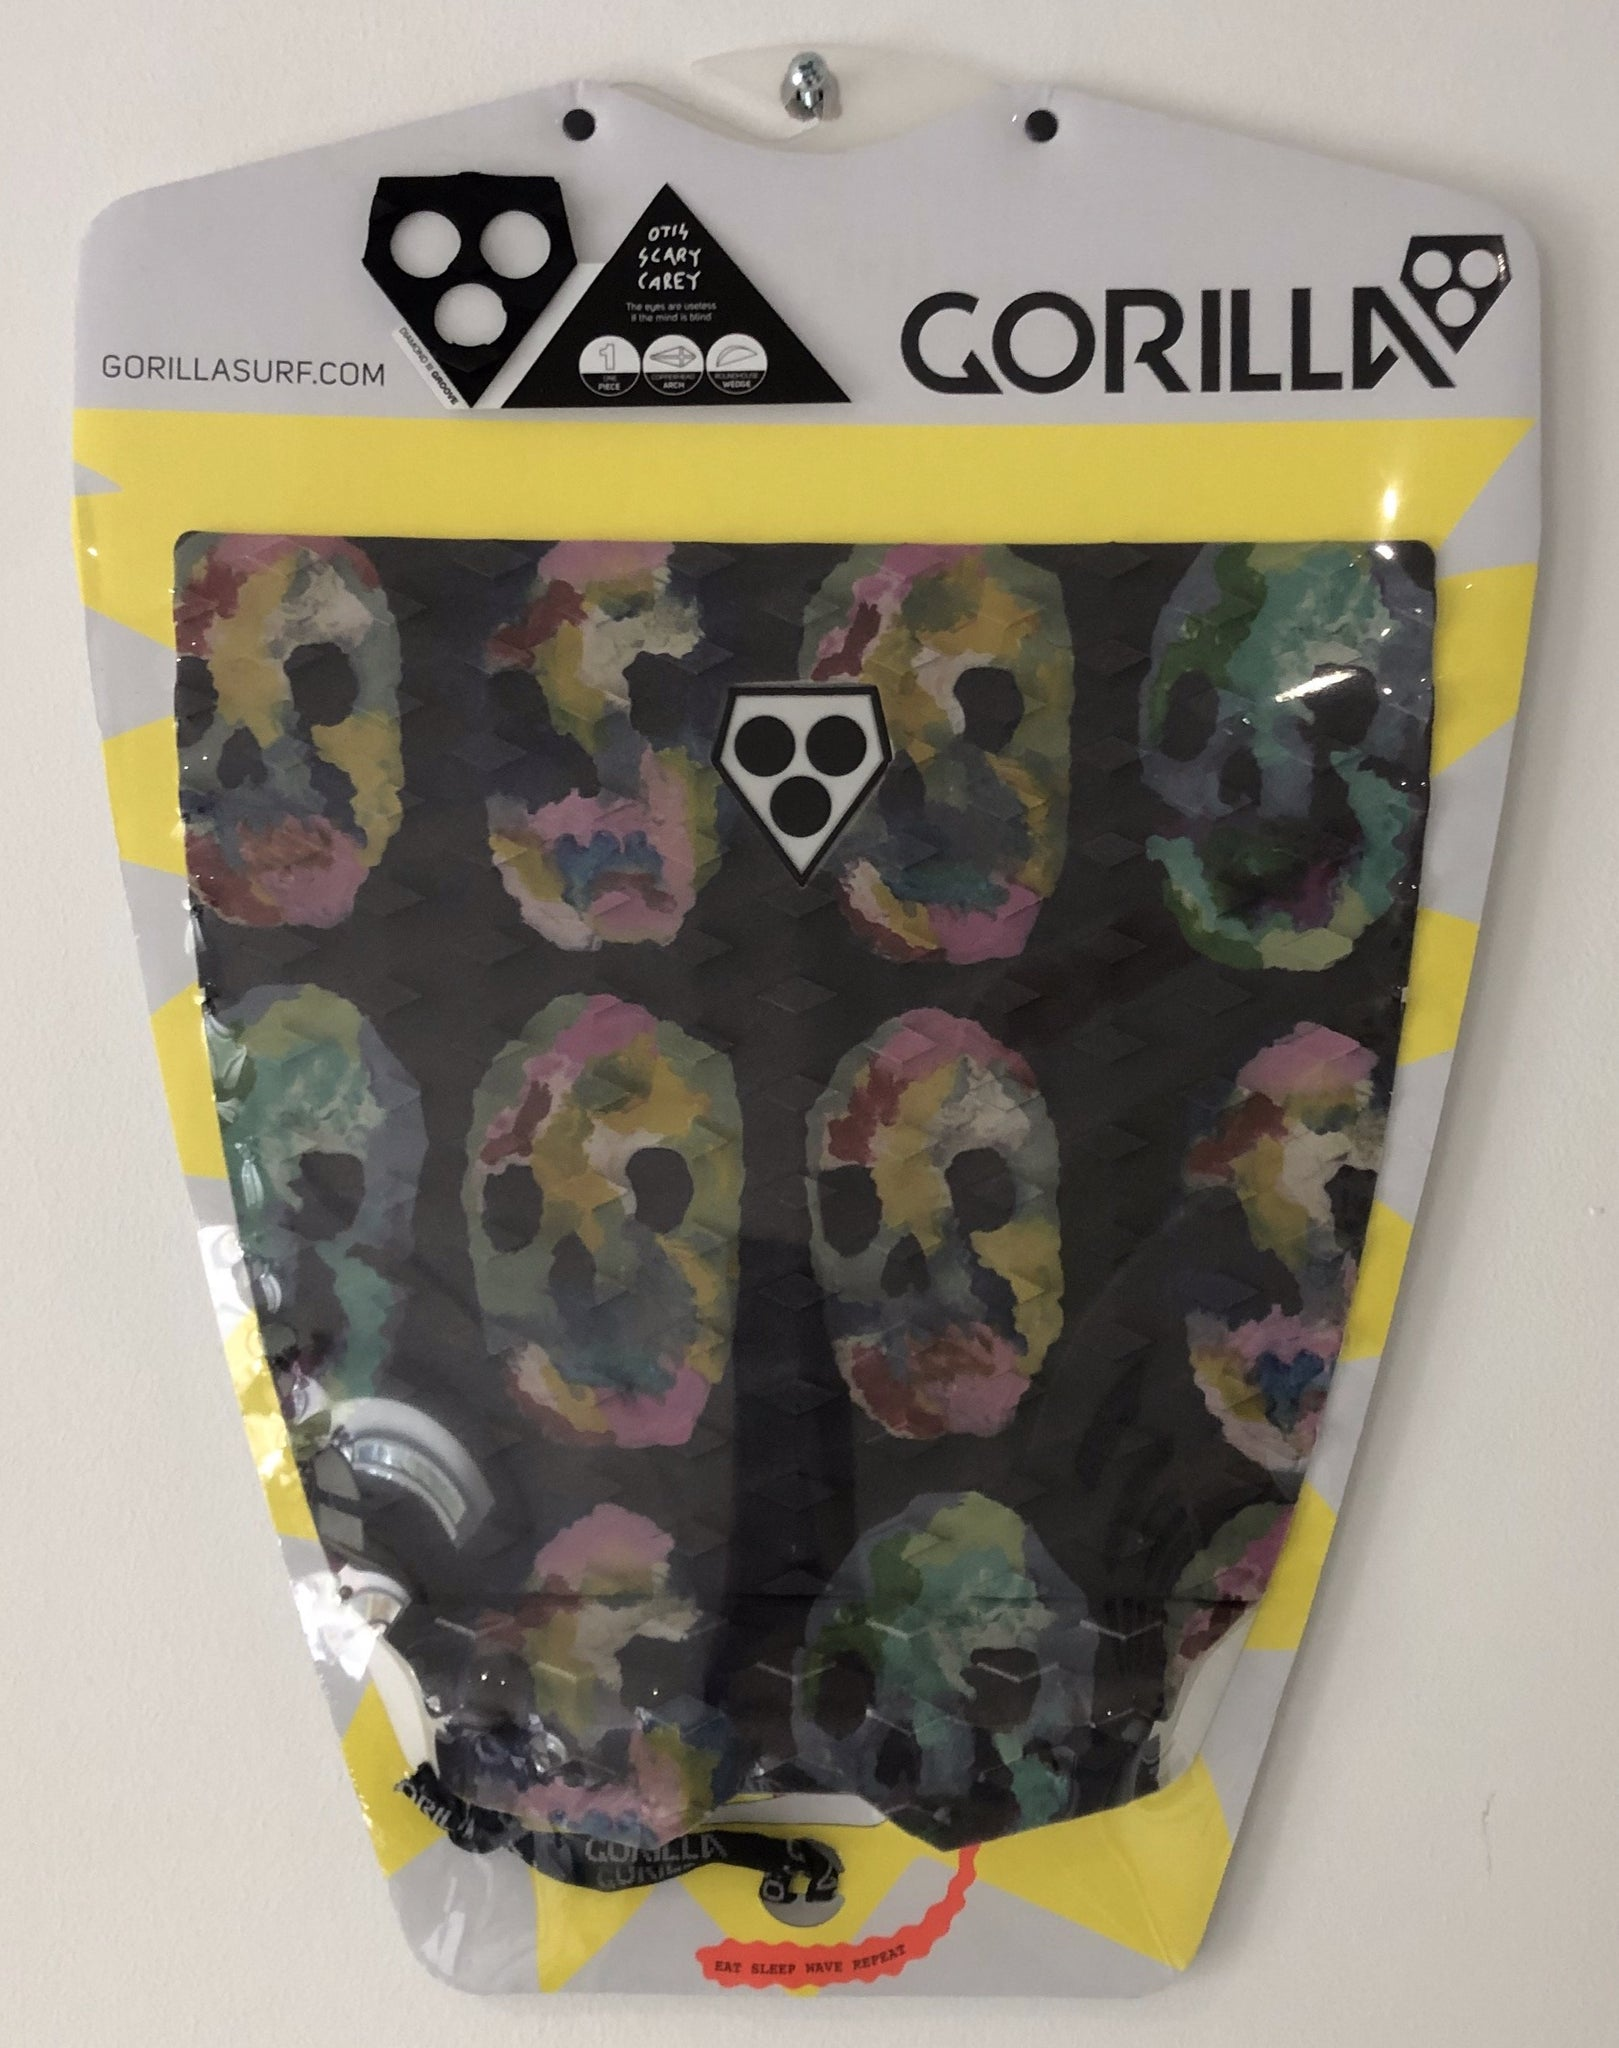 Gorilla Grip - Otis Scary Carey - Surfboard Grip Surf Traction Pad - 27655